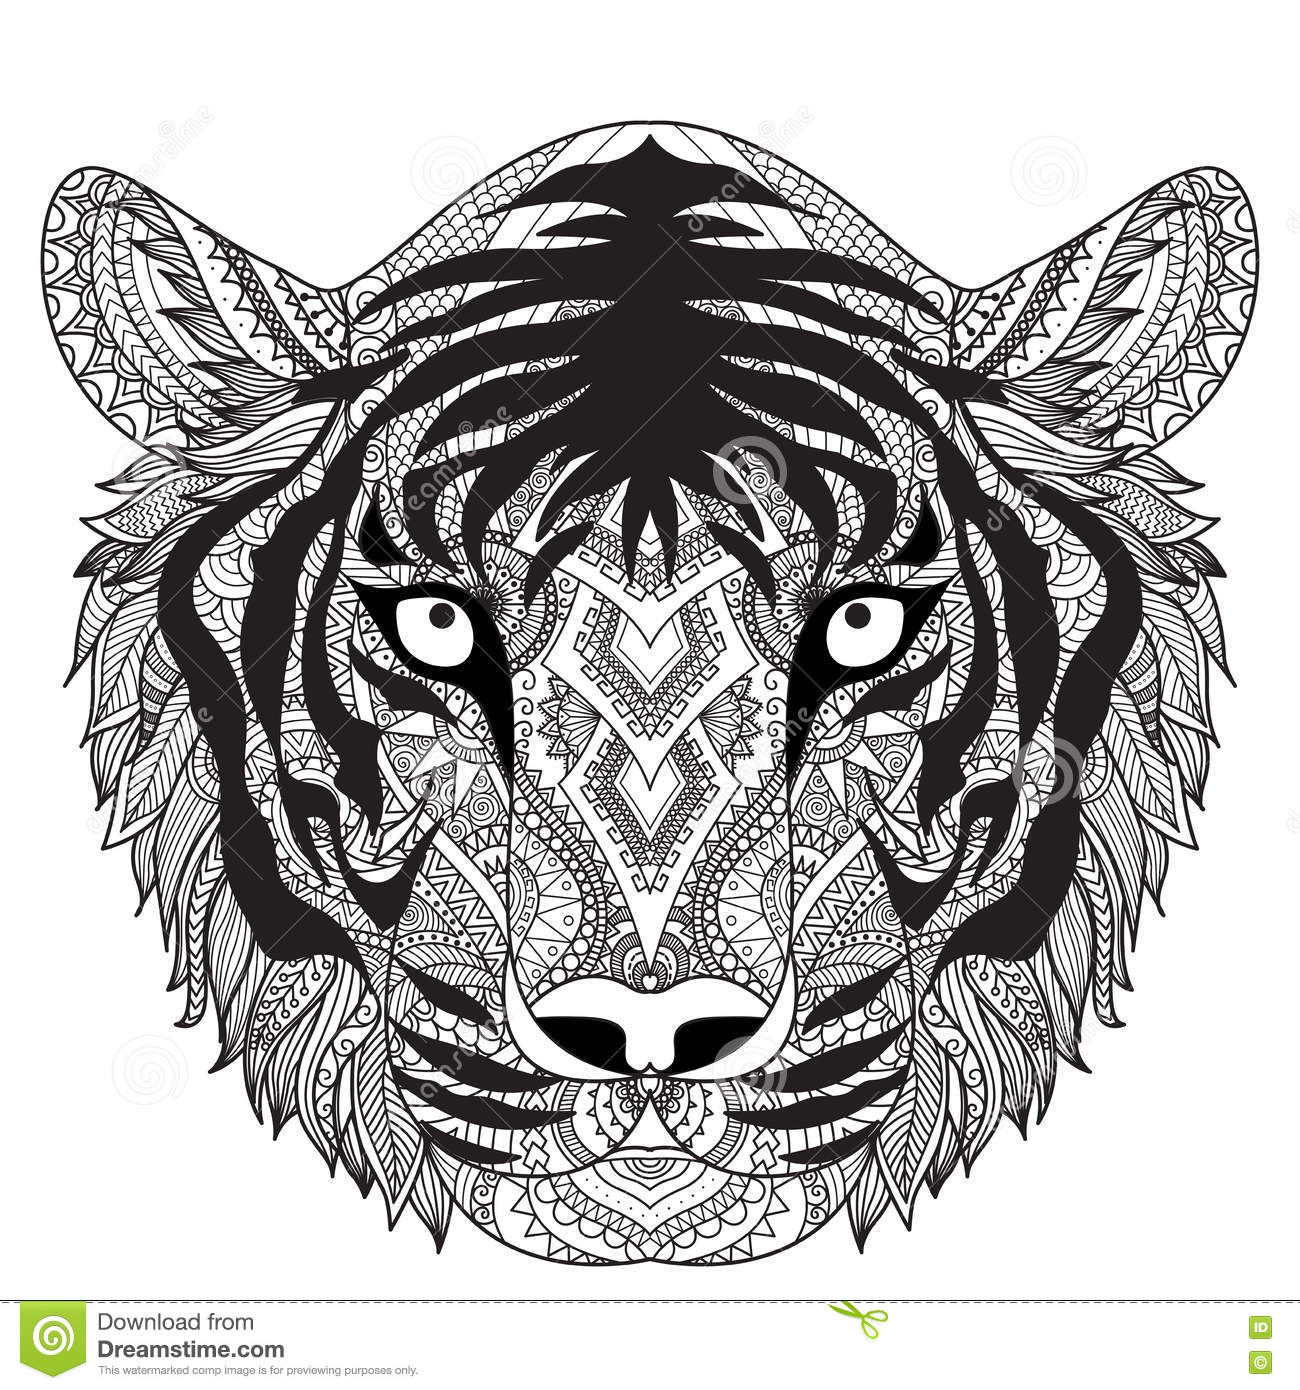 Clean Lines Doodle Design Of Tiger Face For T Shirt Graphic Tattoo